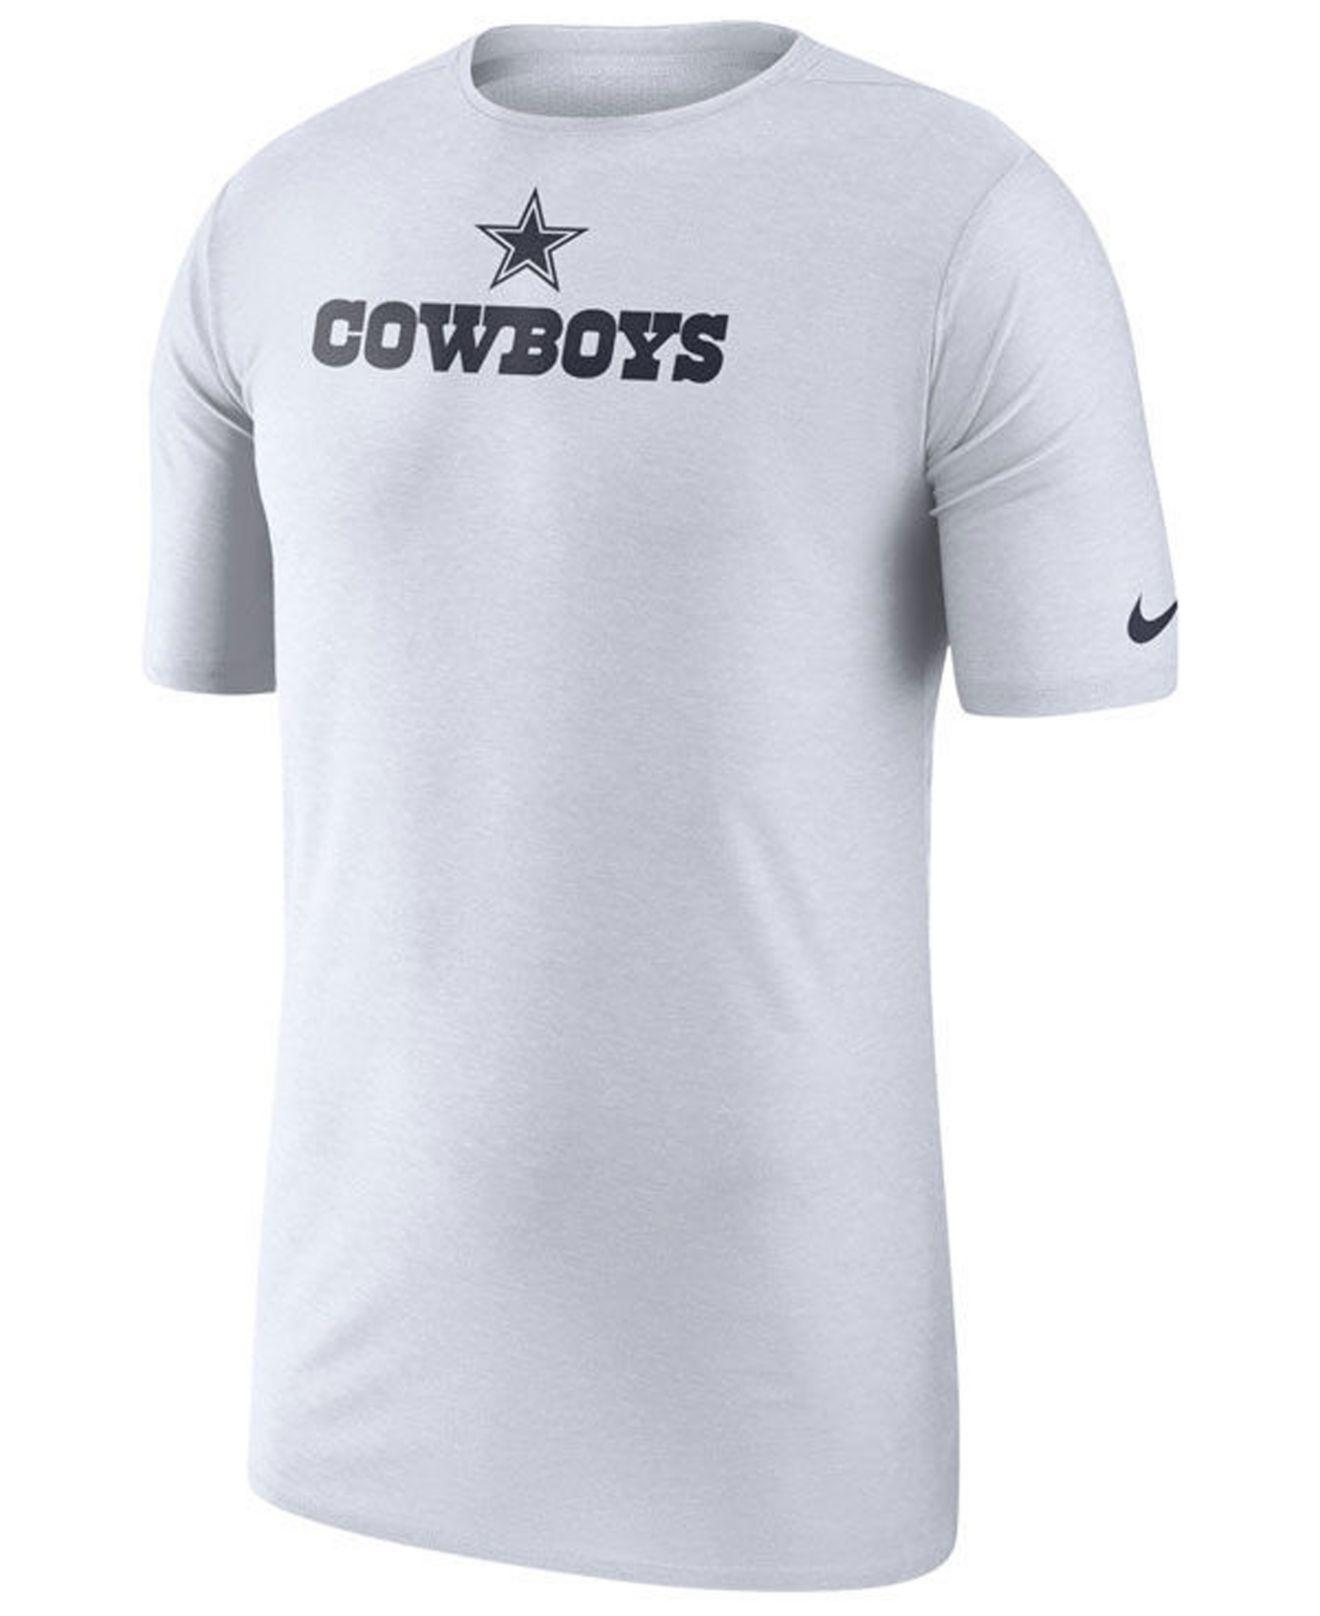 Lyst - Nike Dallas Cowboys Player Top T-shirt 2018 in White for Men 1638df033